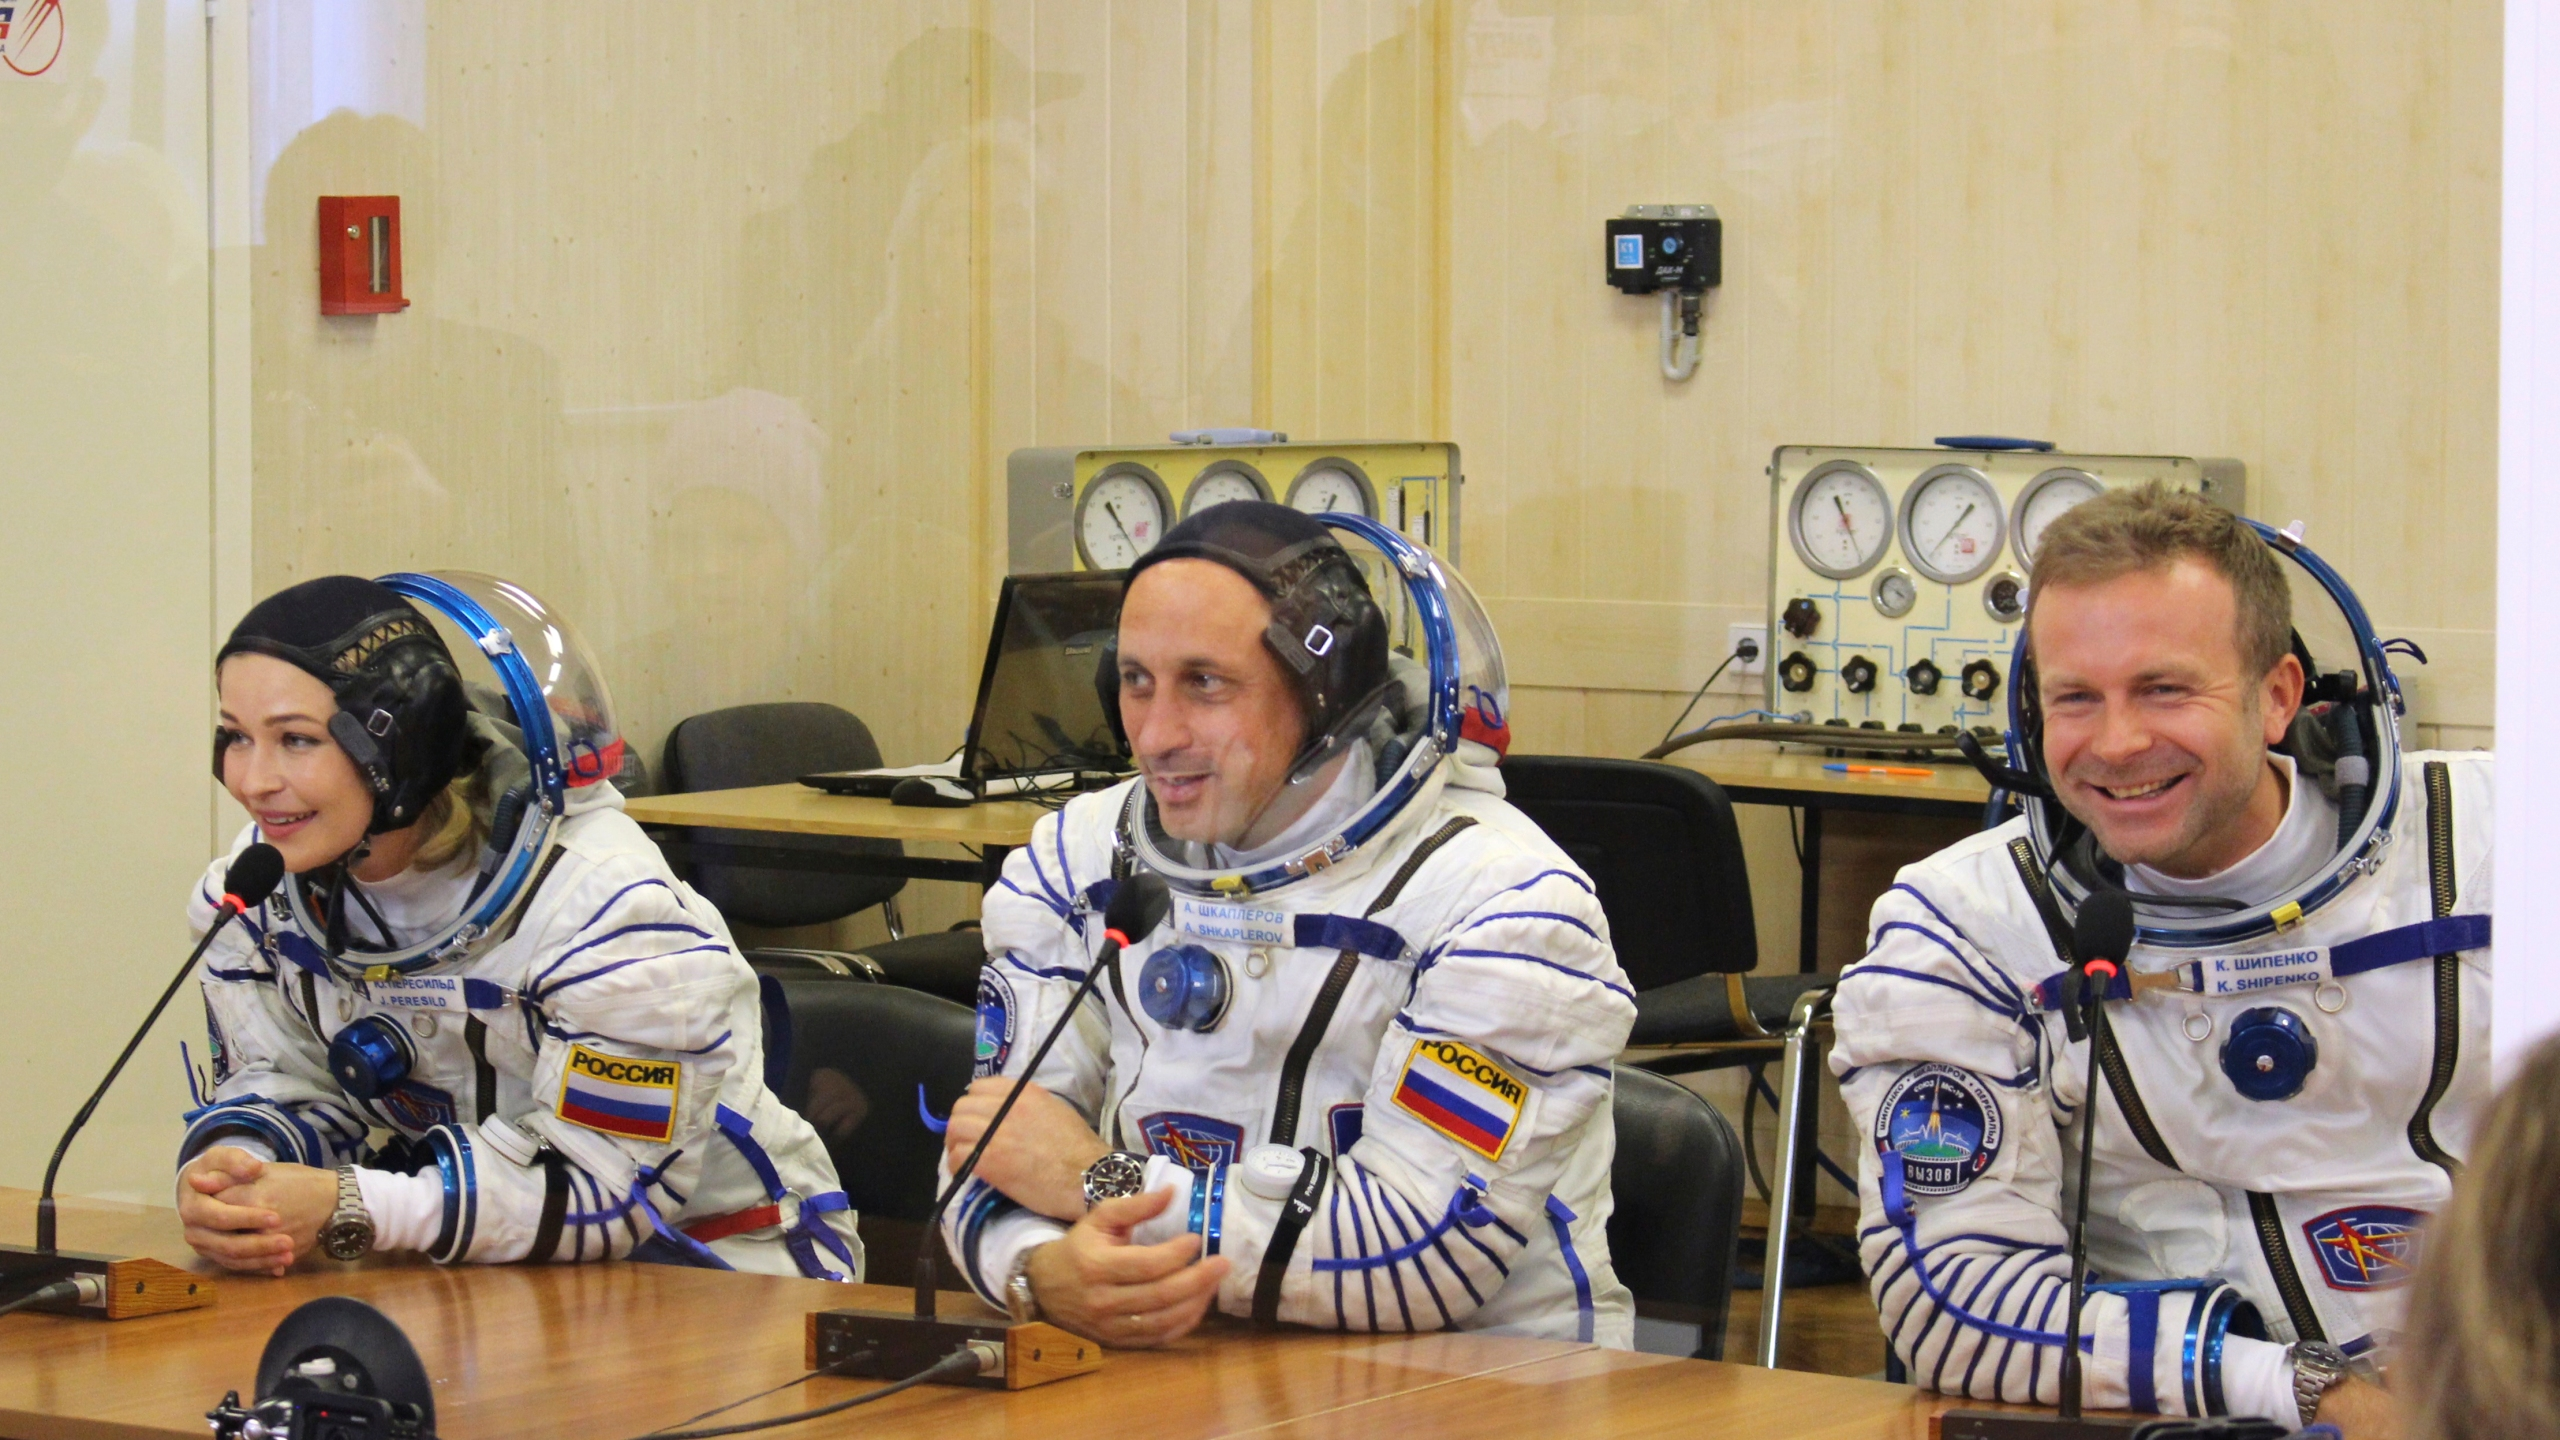 In this handout photo released by Roscosmos, actress Yulia Peresild, left, film director Klim Shipenko, right, and cosmonaut Anton Shkaplerov speak with their relatives through a safety glass prior the launch at the Baikonur Cosmodrome, Kazakhstan, Tuesday, Oct. 5, 2021. Actress Yulia Peresild and film director Klim Shipenko blasted off Tuesday for the International Space Station in a Russian Soyuz spacecraft together with cosmonaut Anton Shkaplerov, a veteran of three space missions, to make a feature film in orbit. (Roscosmos Space Agency via AP)